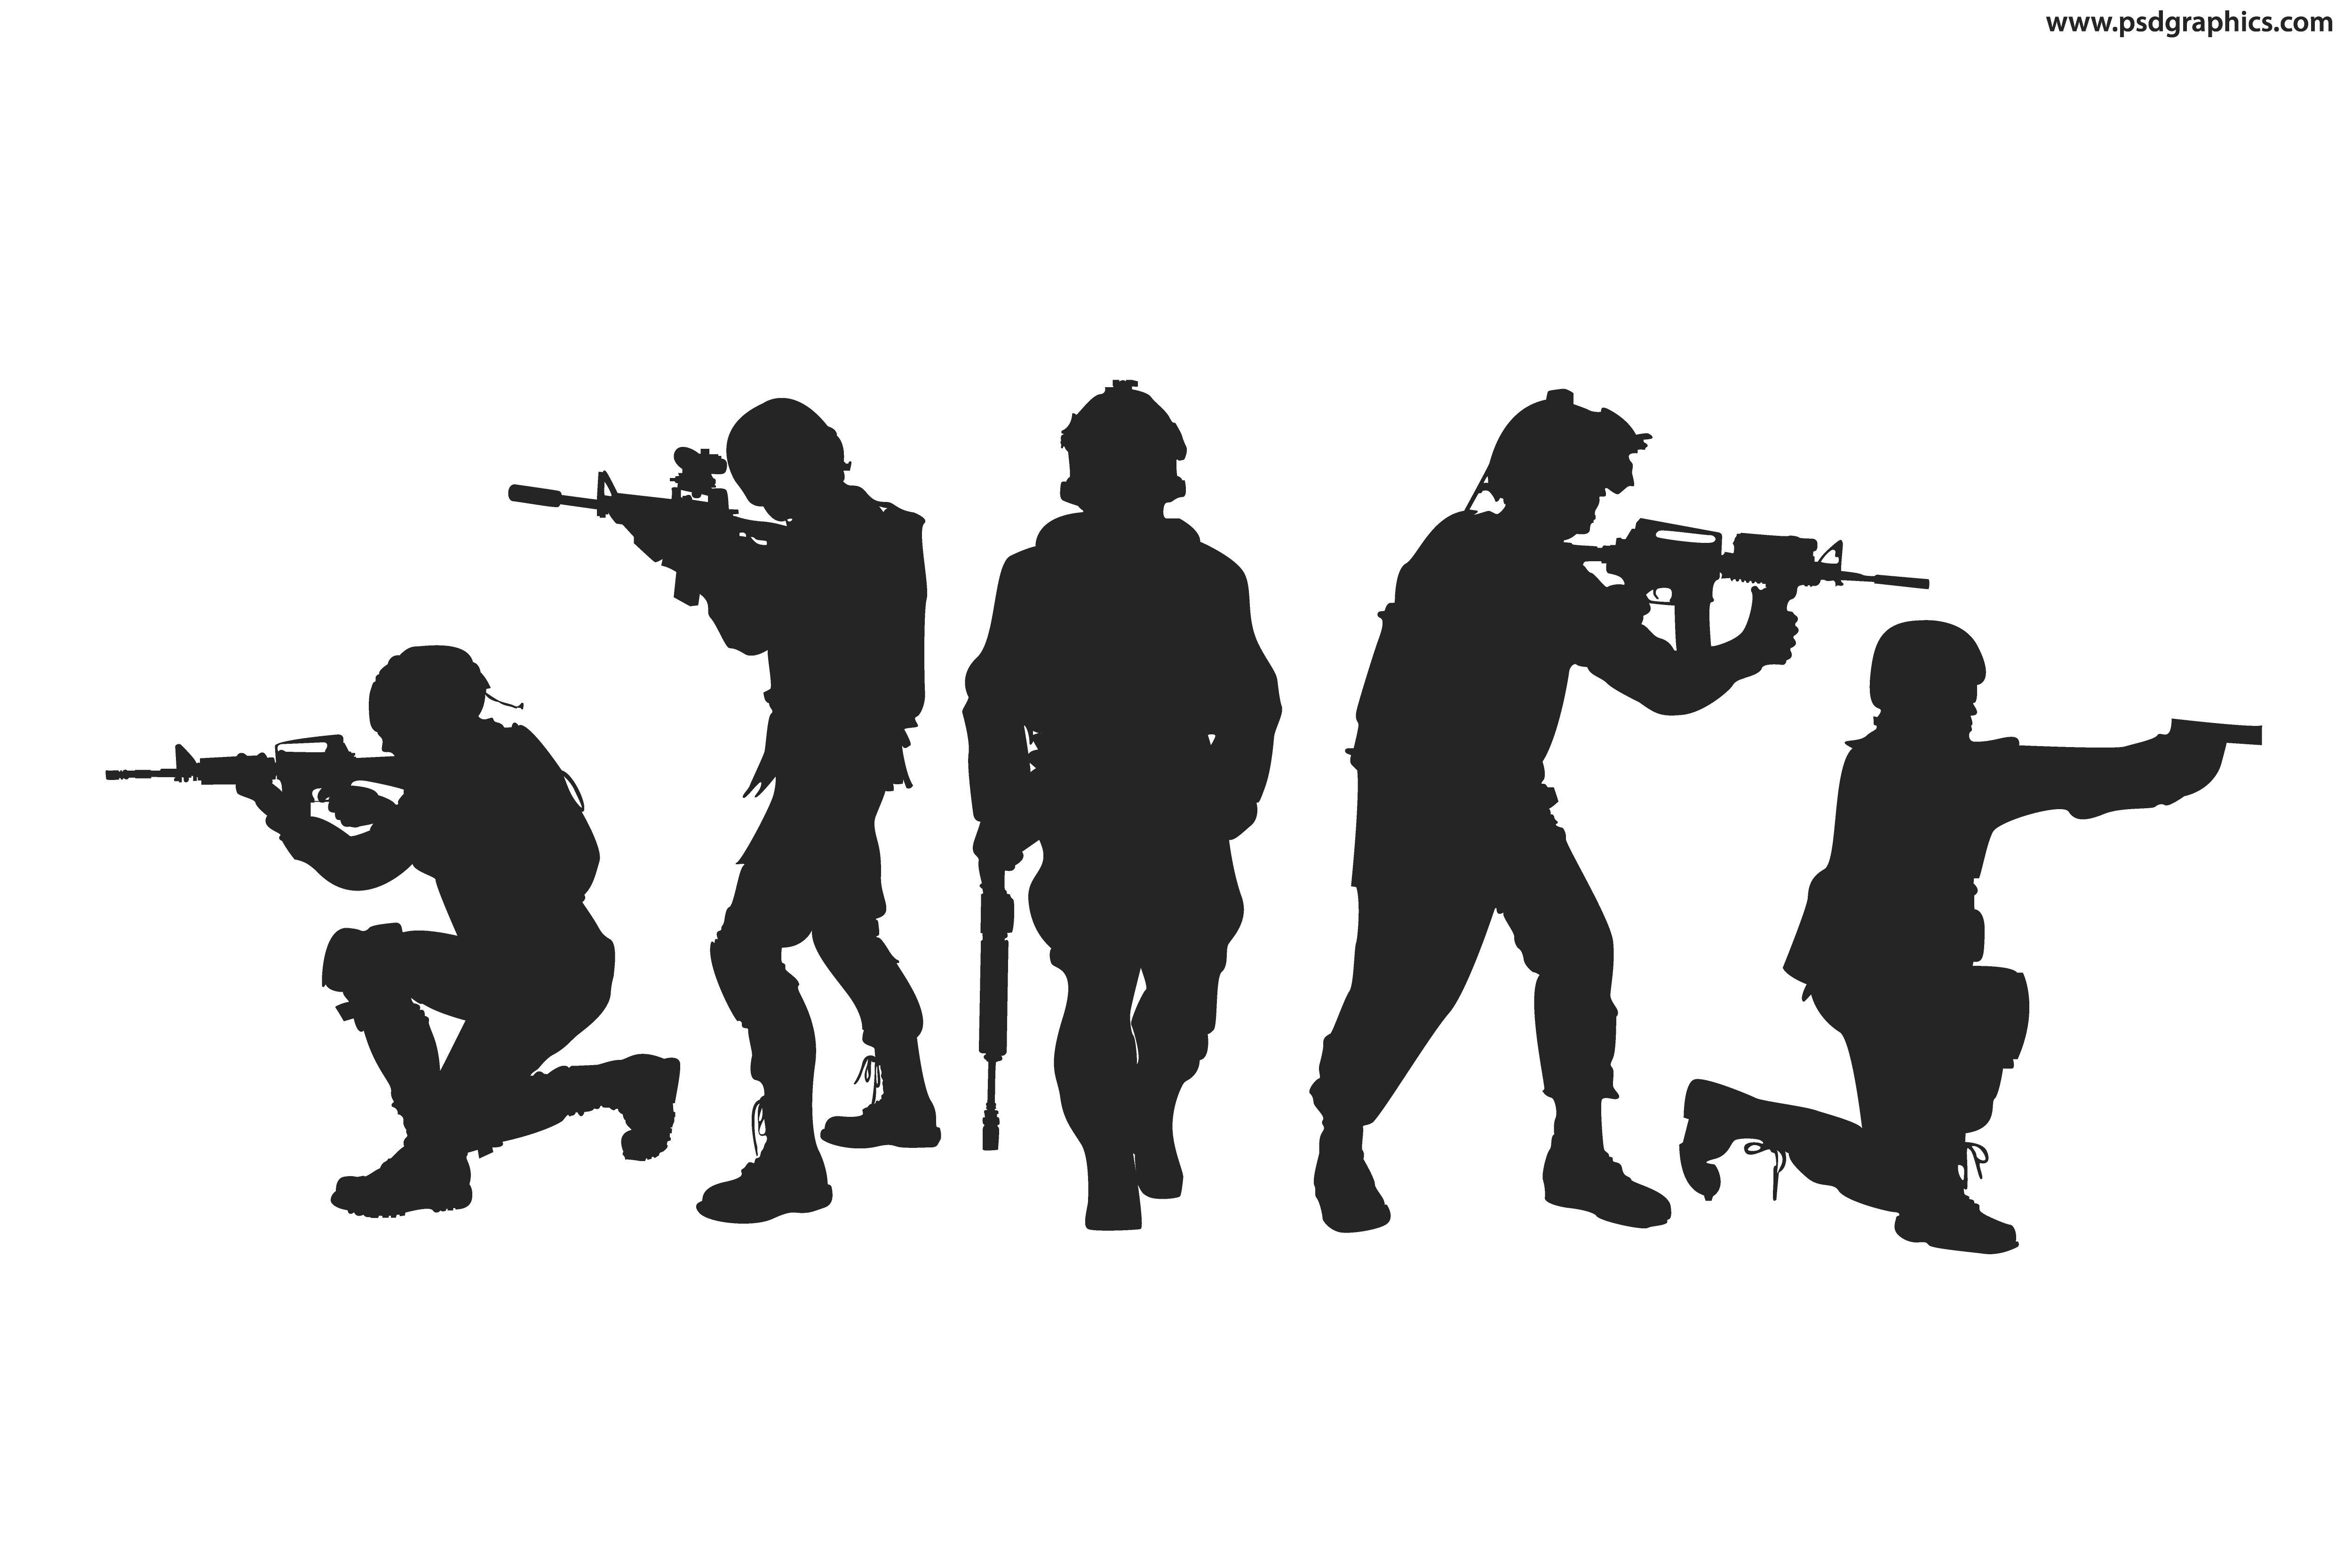 silhouette of soldier soldier silhouette png download 390805 free silhouette soldier of